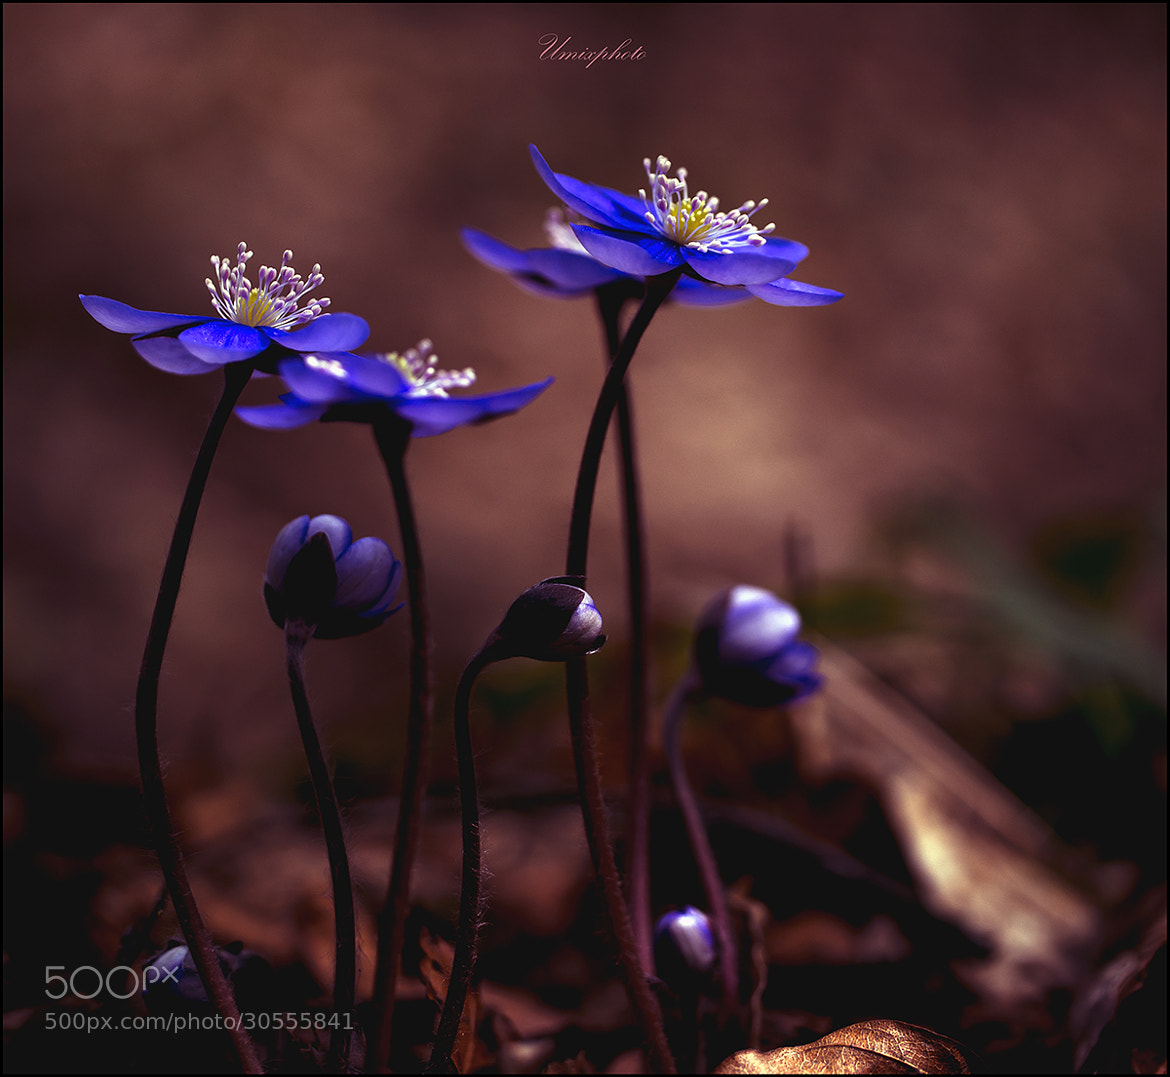 Photograph Spring Time by Jaro Miščevič on 500px